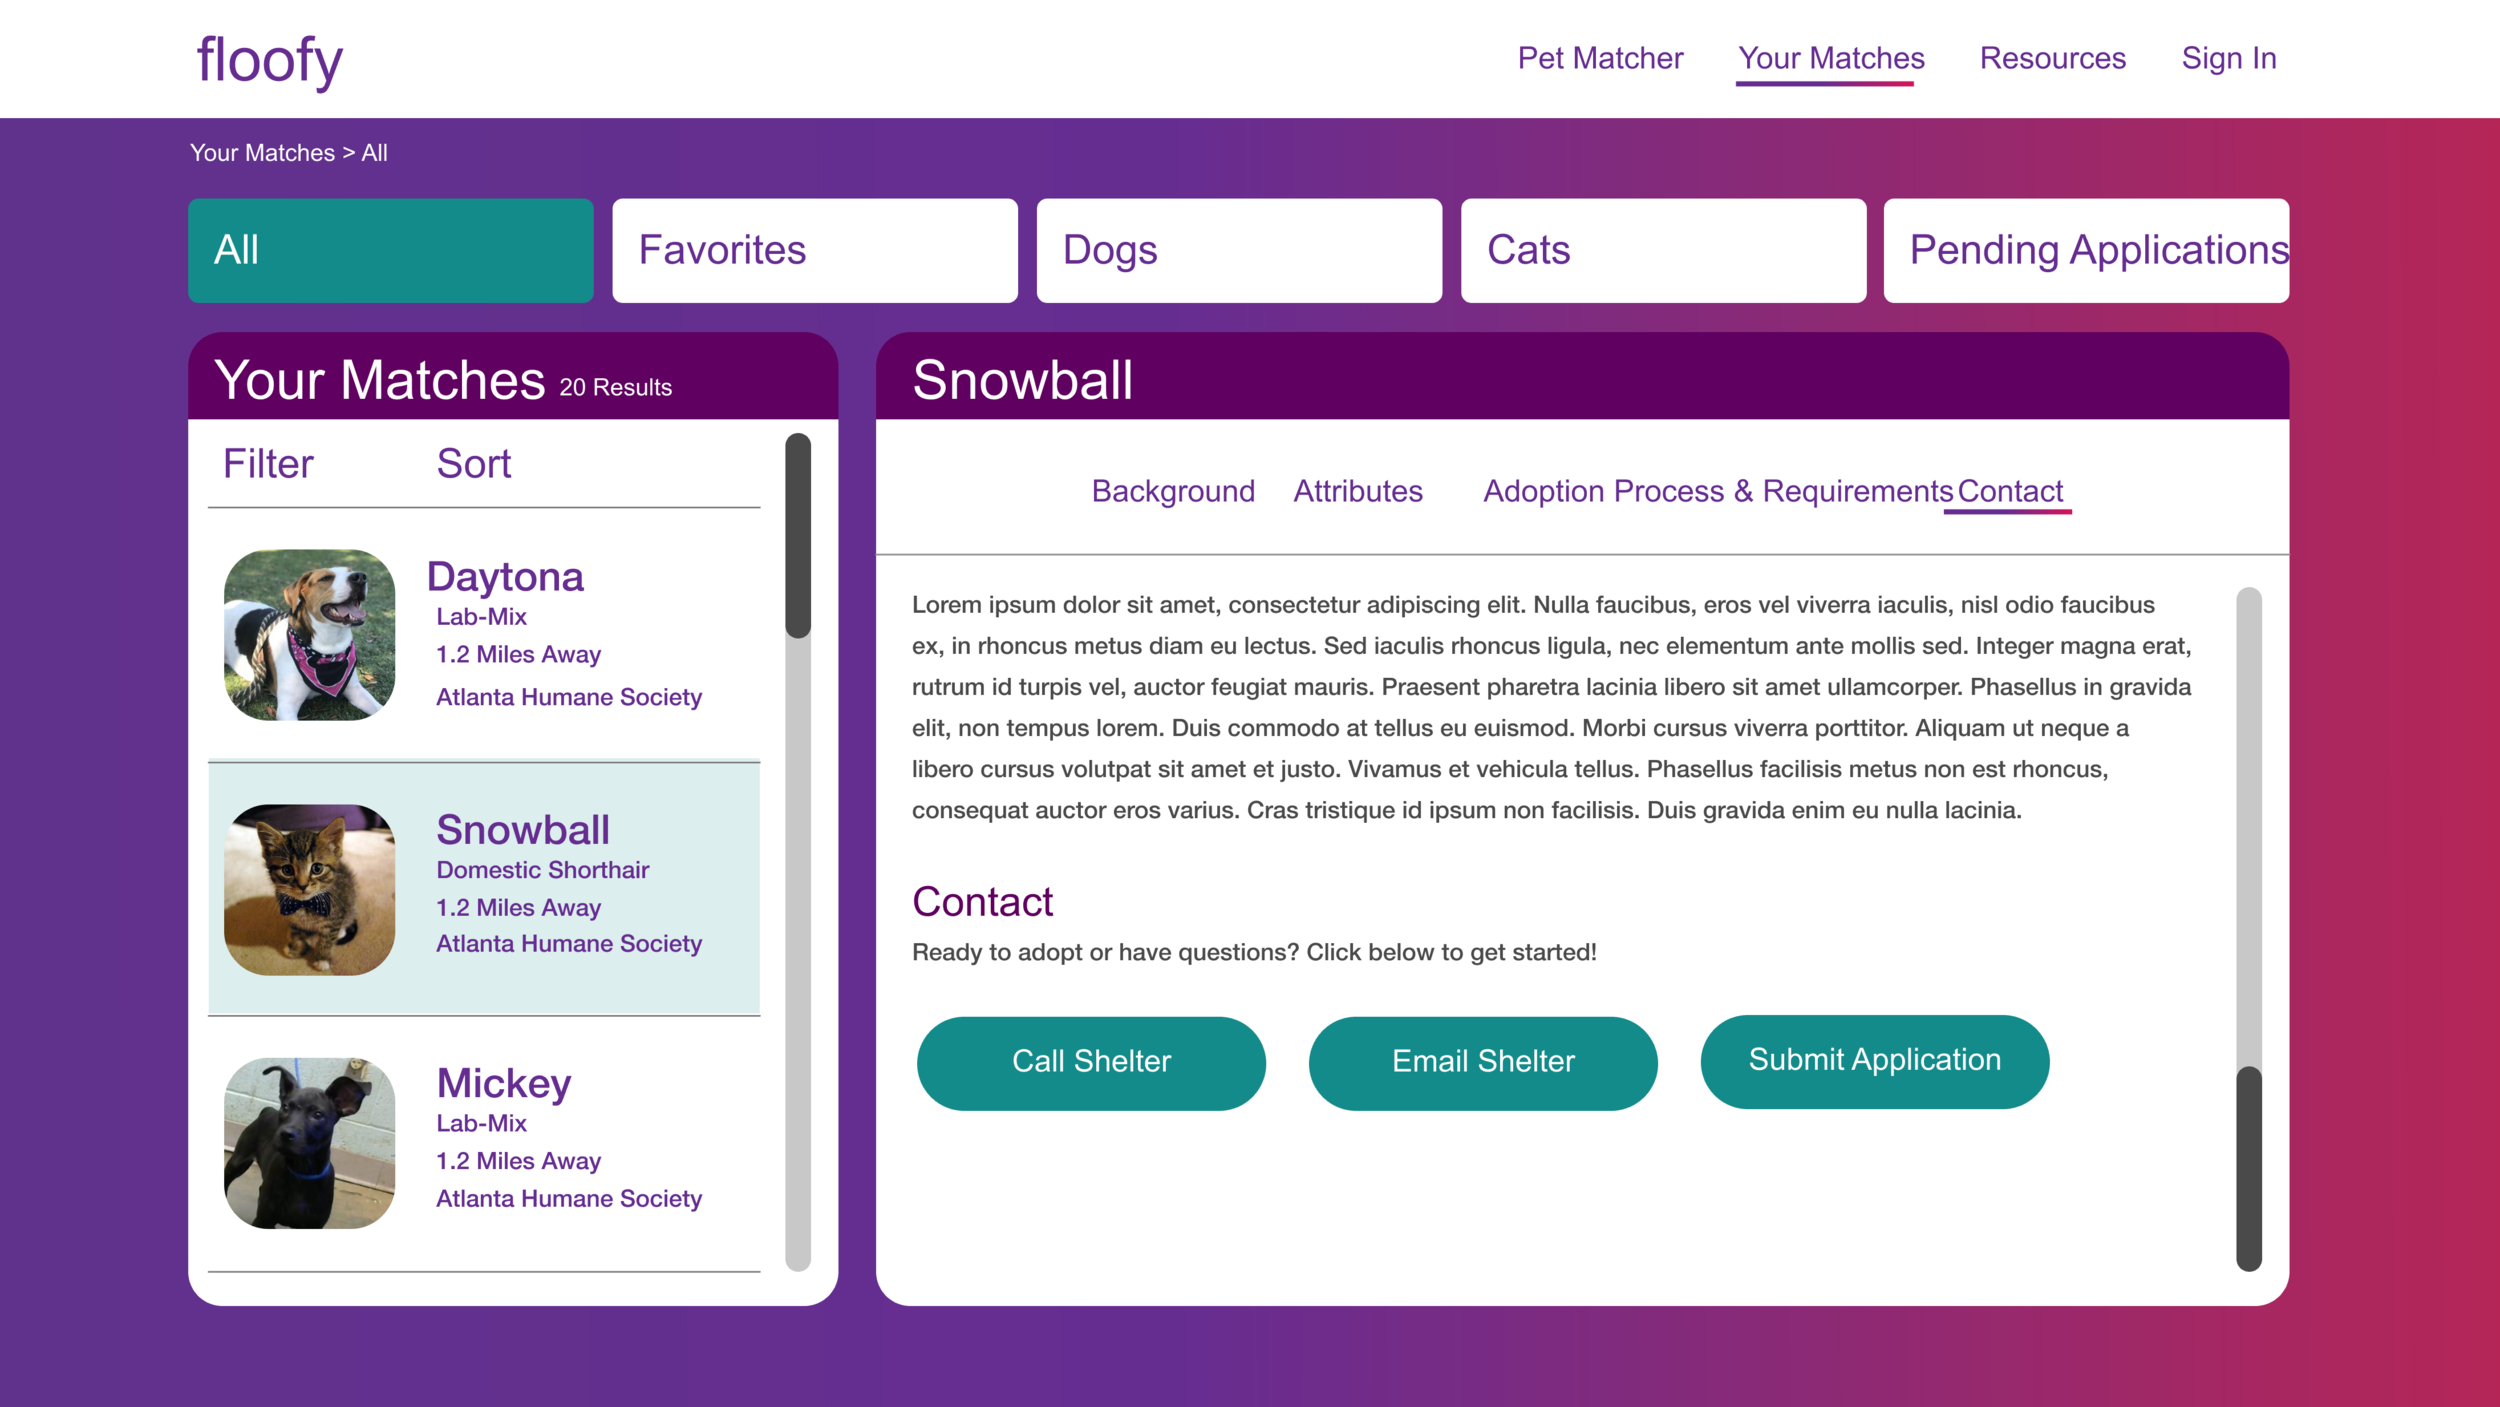 Pet Description - On the right of the Pet Matches Dashboard, users can see individual an individual pet's background, physical and health attributes, and contact information for the shelter.